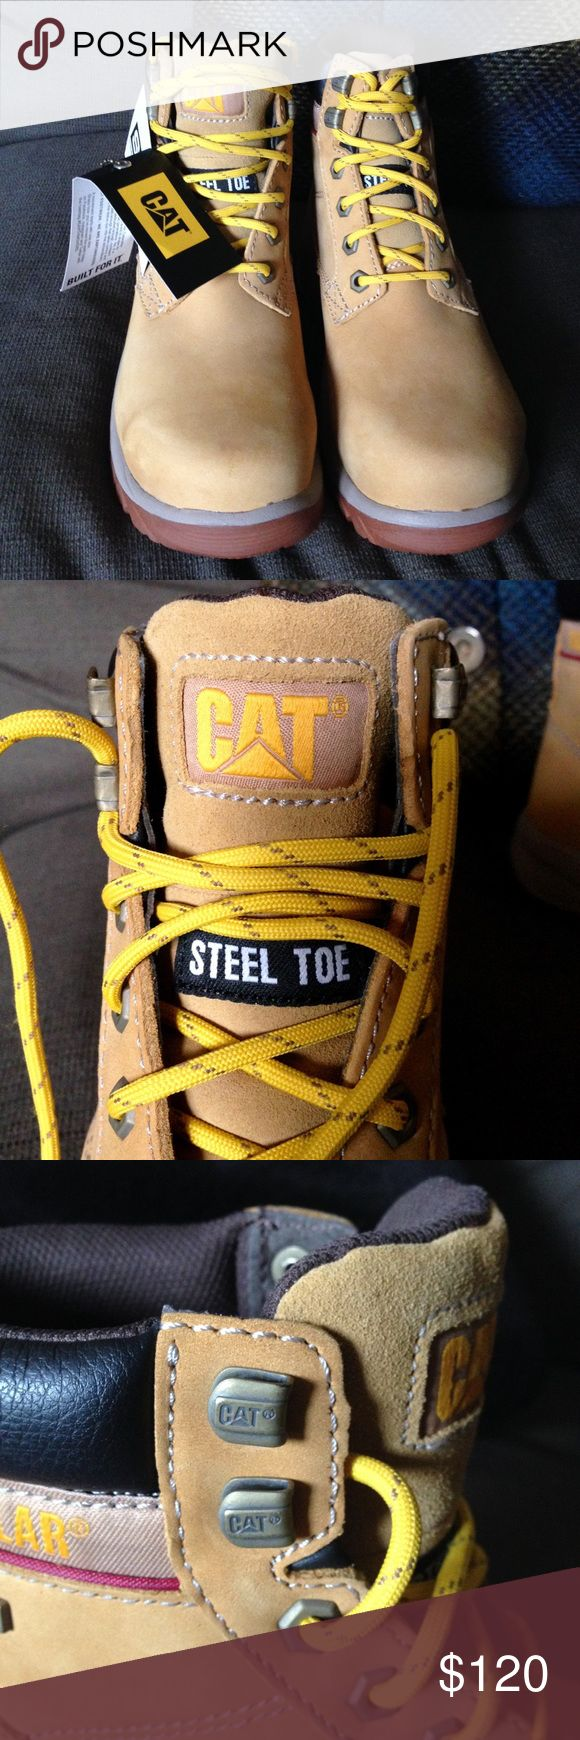 """CATERPILLAR Leather Waterproof Steel Toe Work Boot NWT/Unused and with the $119.99 sales slip CATERPILLAR Tan Leather Upper, Balance man made materials, Waterproof, Steel Toe Work Boot with SRP technology provides """"best in class"""" slip resistance. Box can be sent upon request. Caterpillar Shoes"""